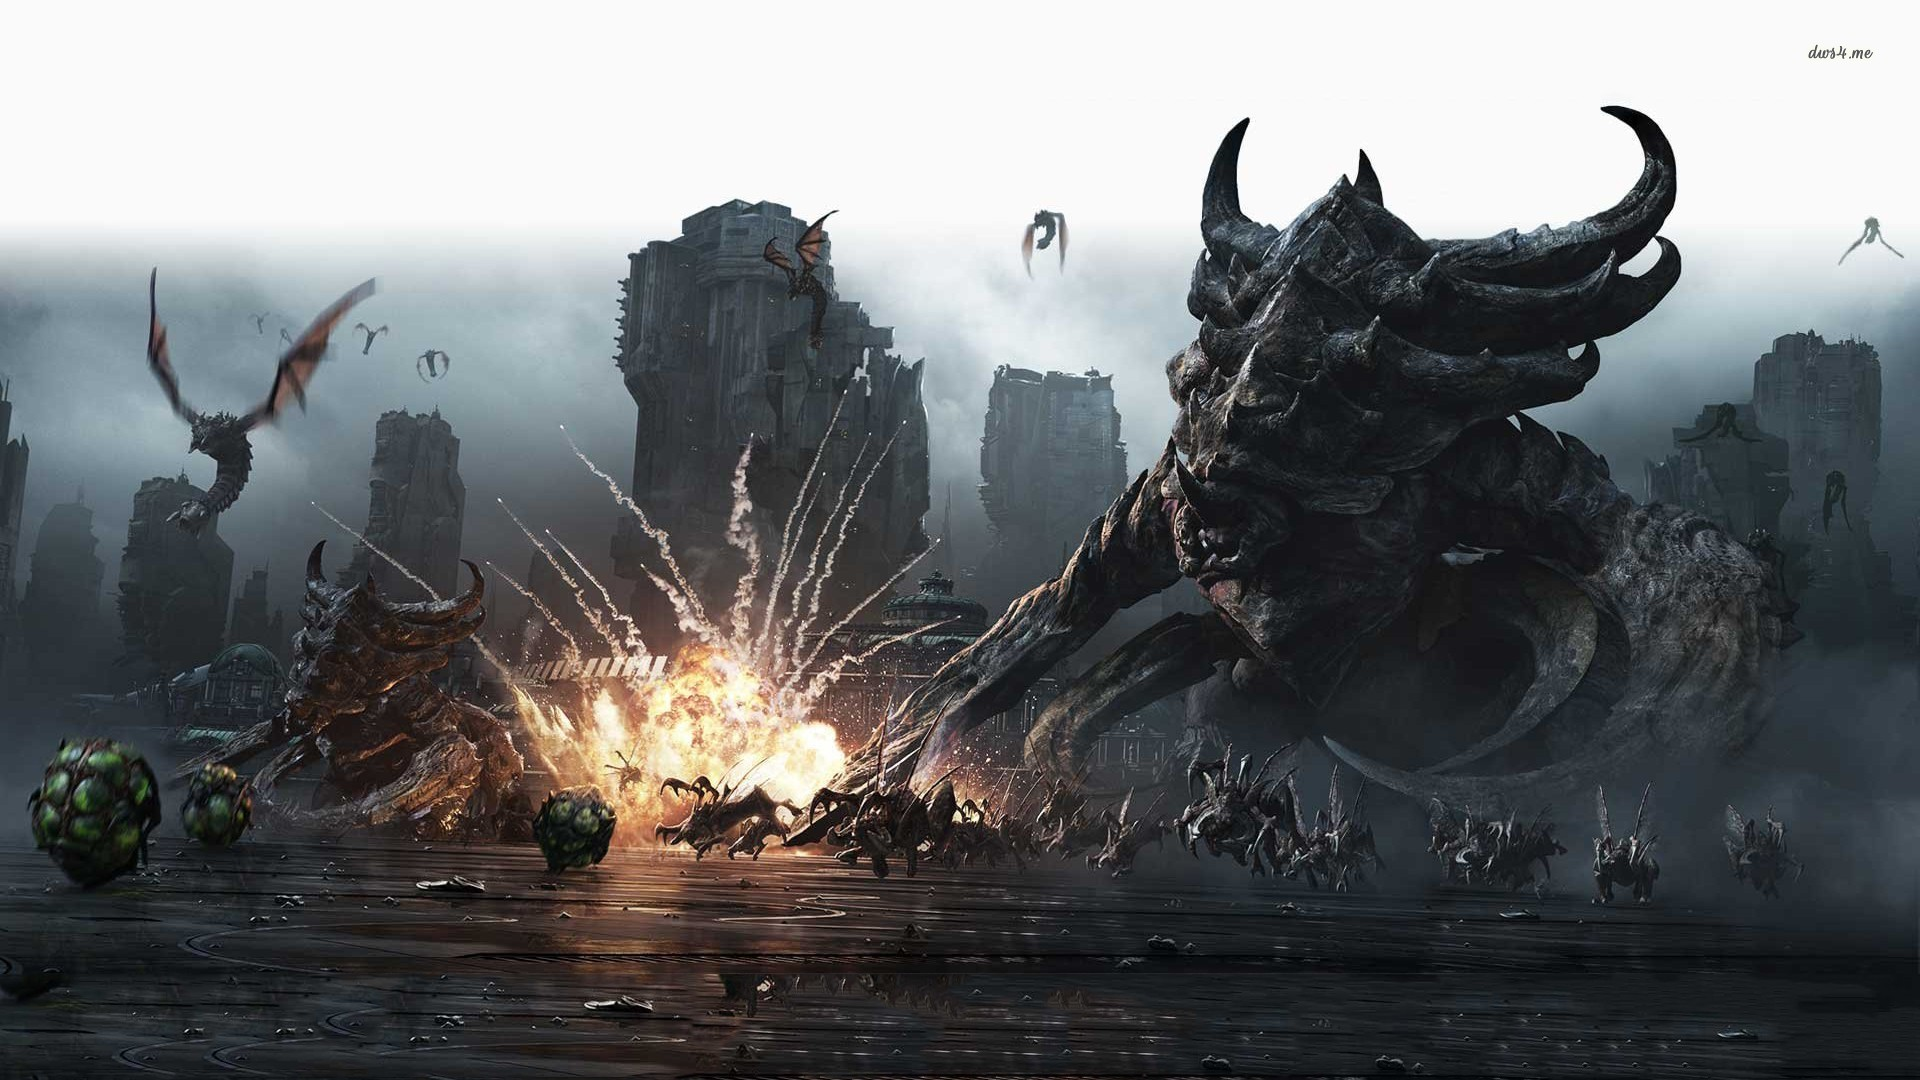 Download Starcraft II Wallpapers Pictures Images [1920x1080] 77 1920x1080